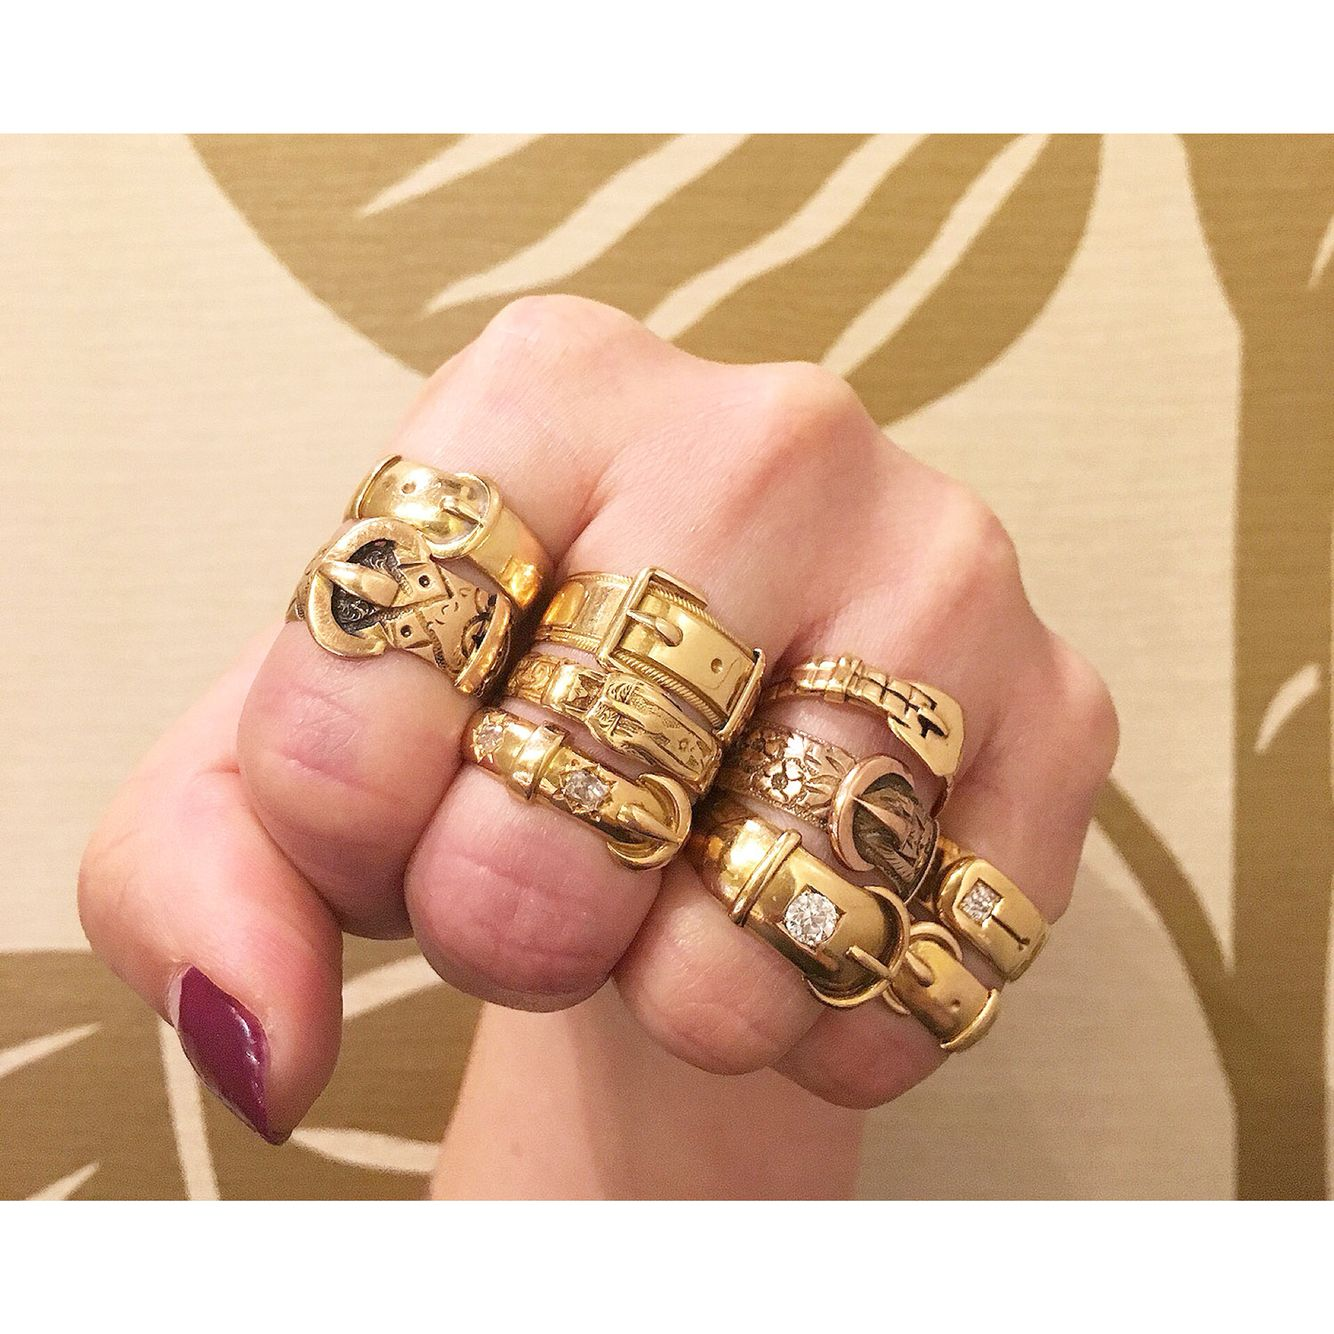 Classic antique and vintage gold buckle rings. Only at Isadoras ...